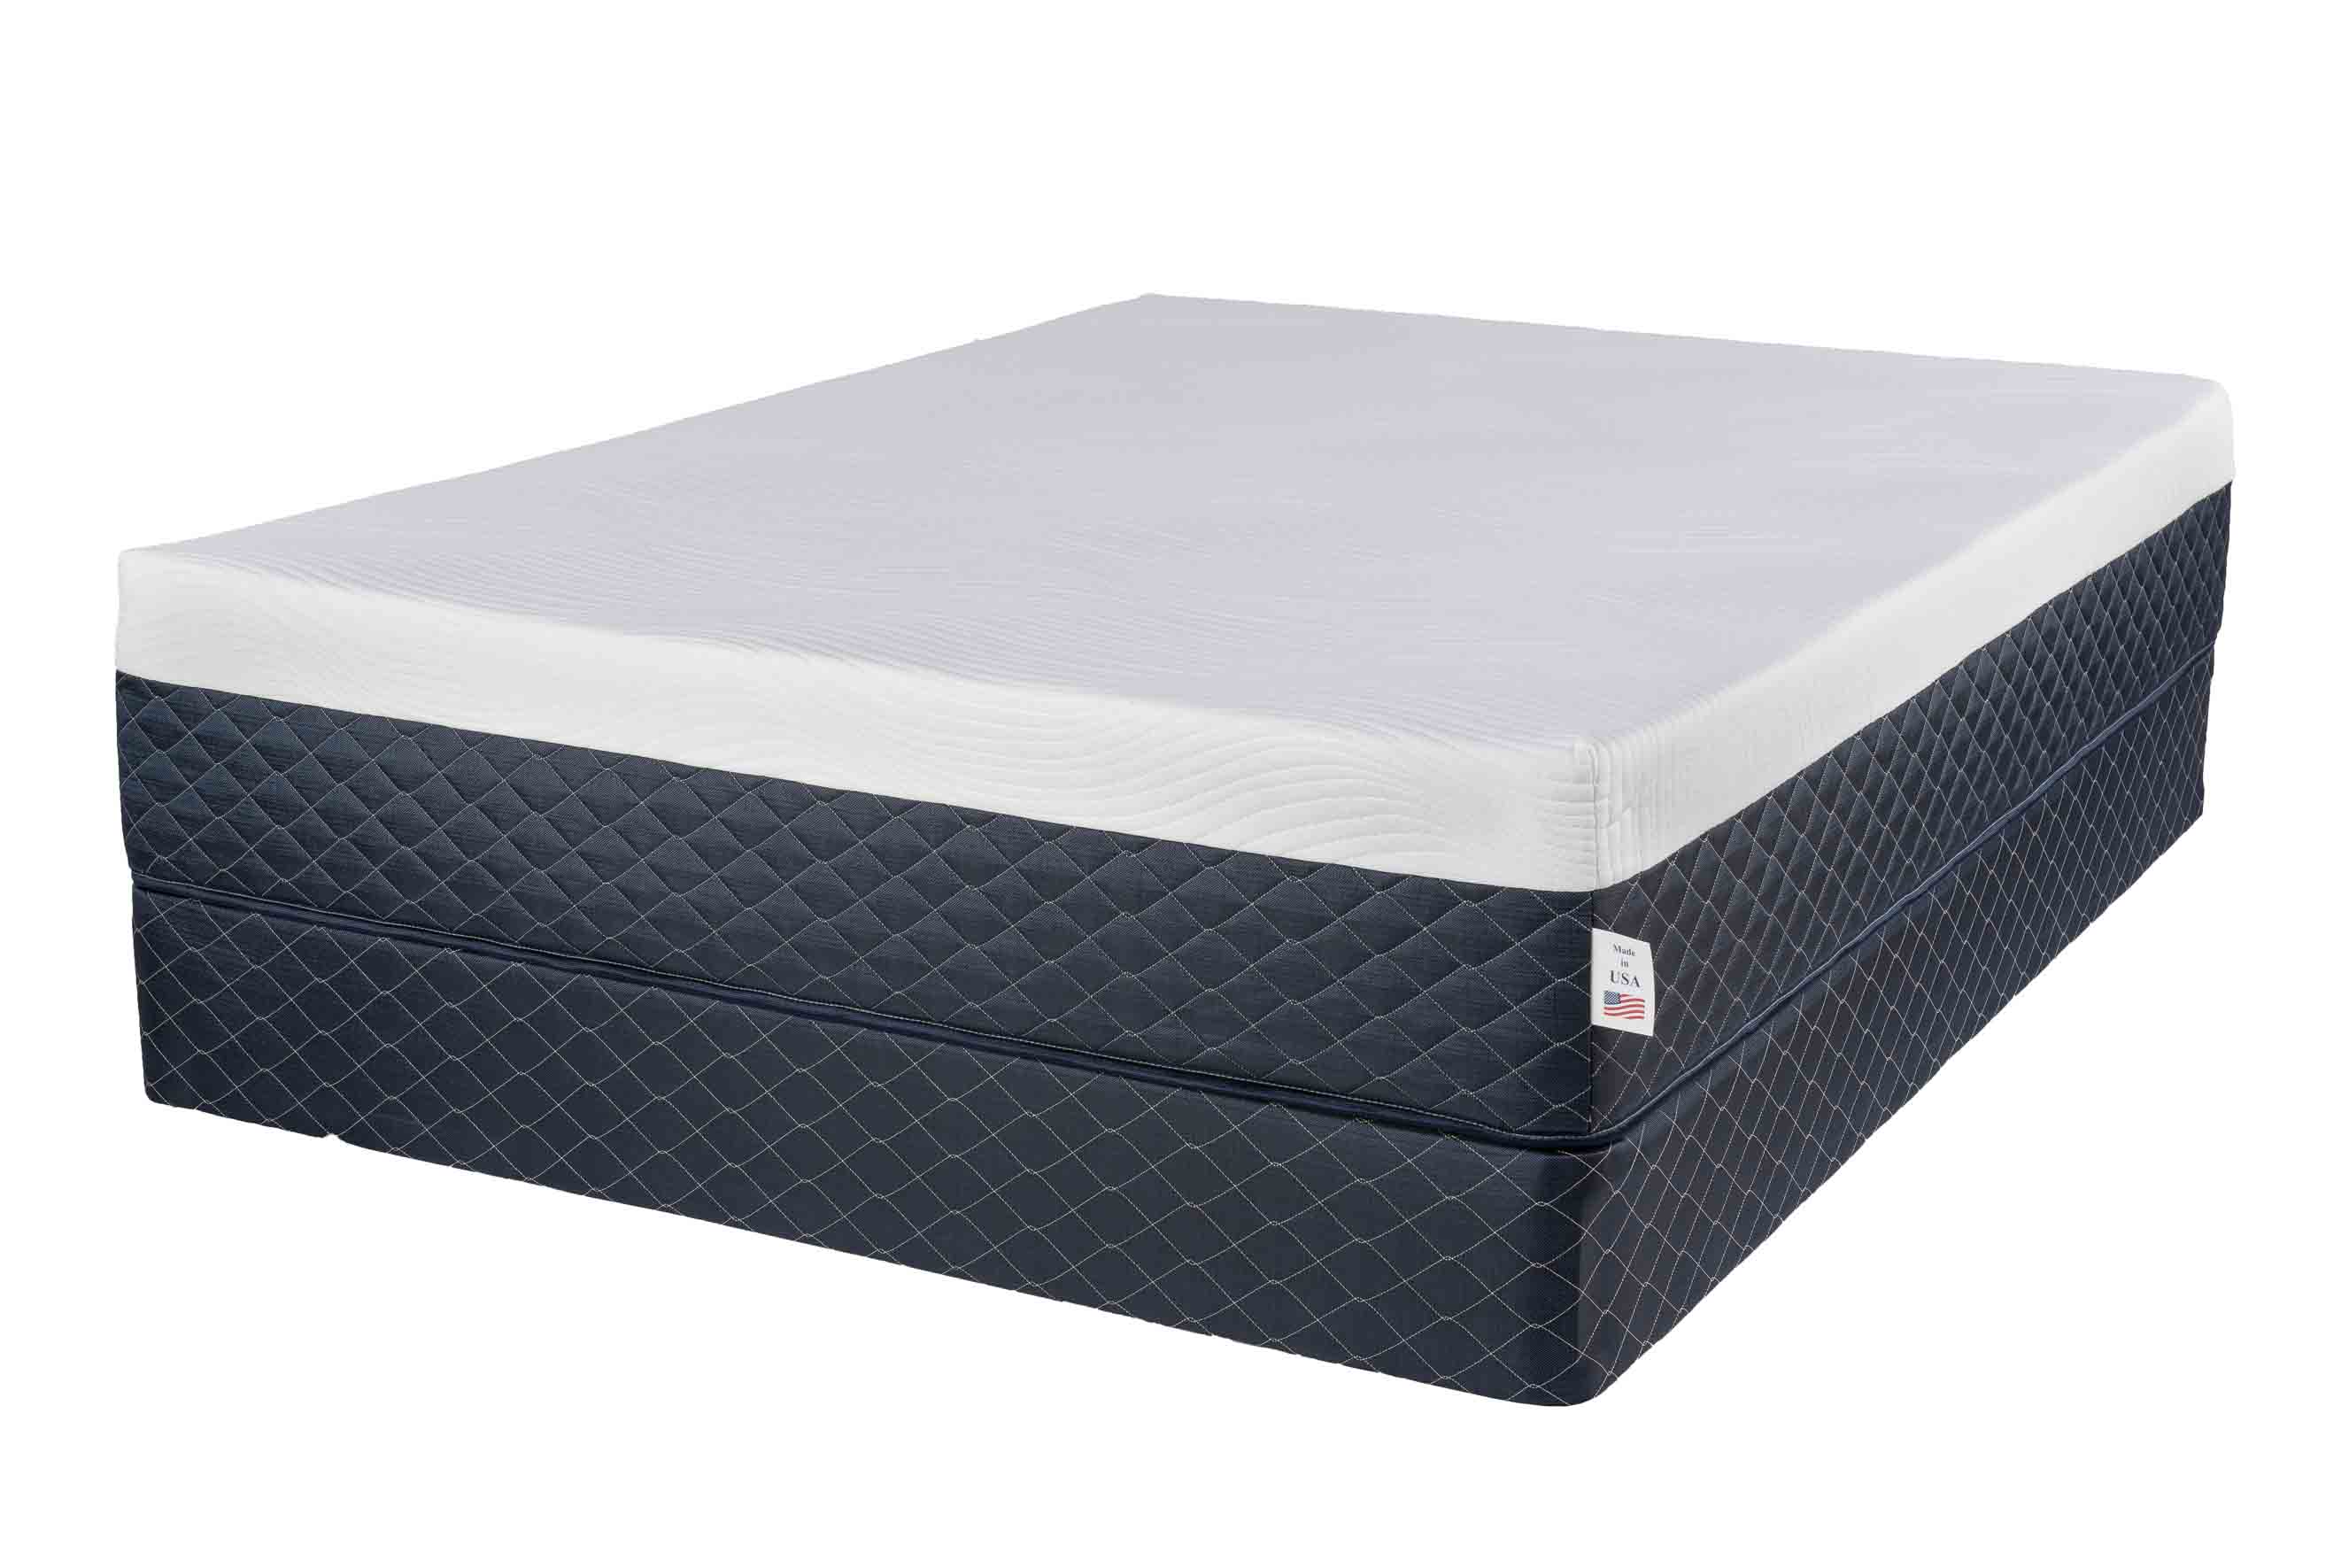 Symbol Mattress Mattress Reviews Goodbed Com